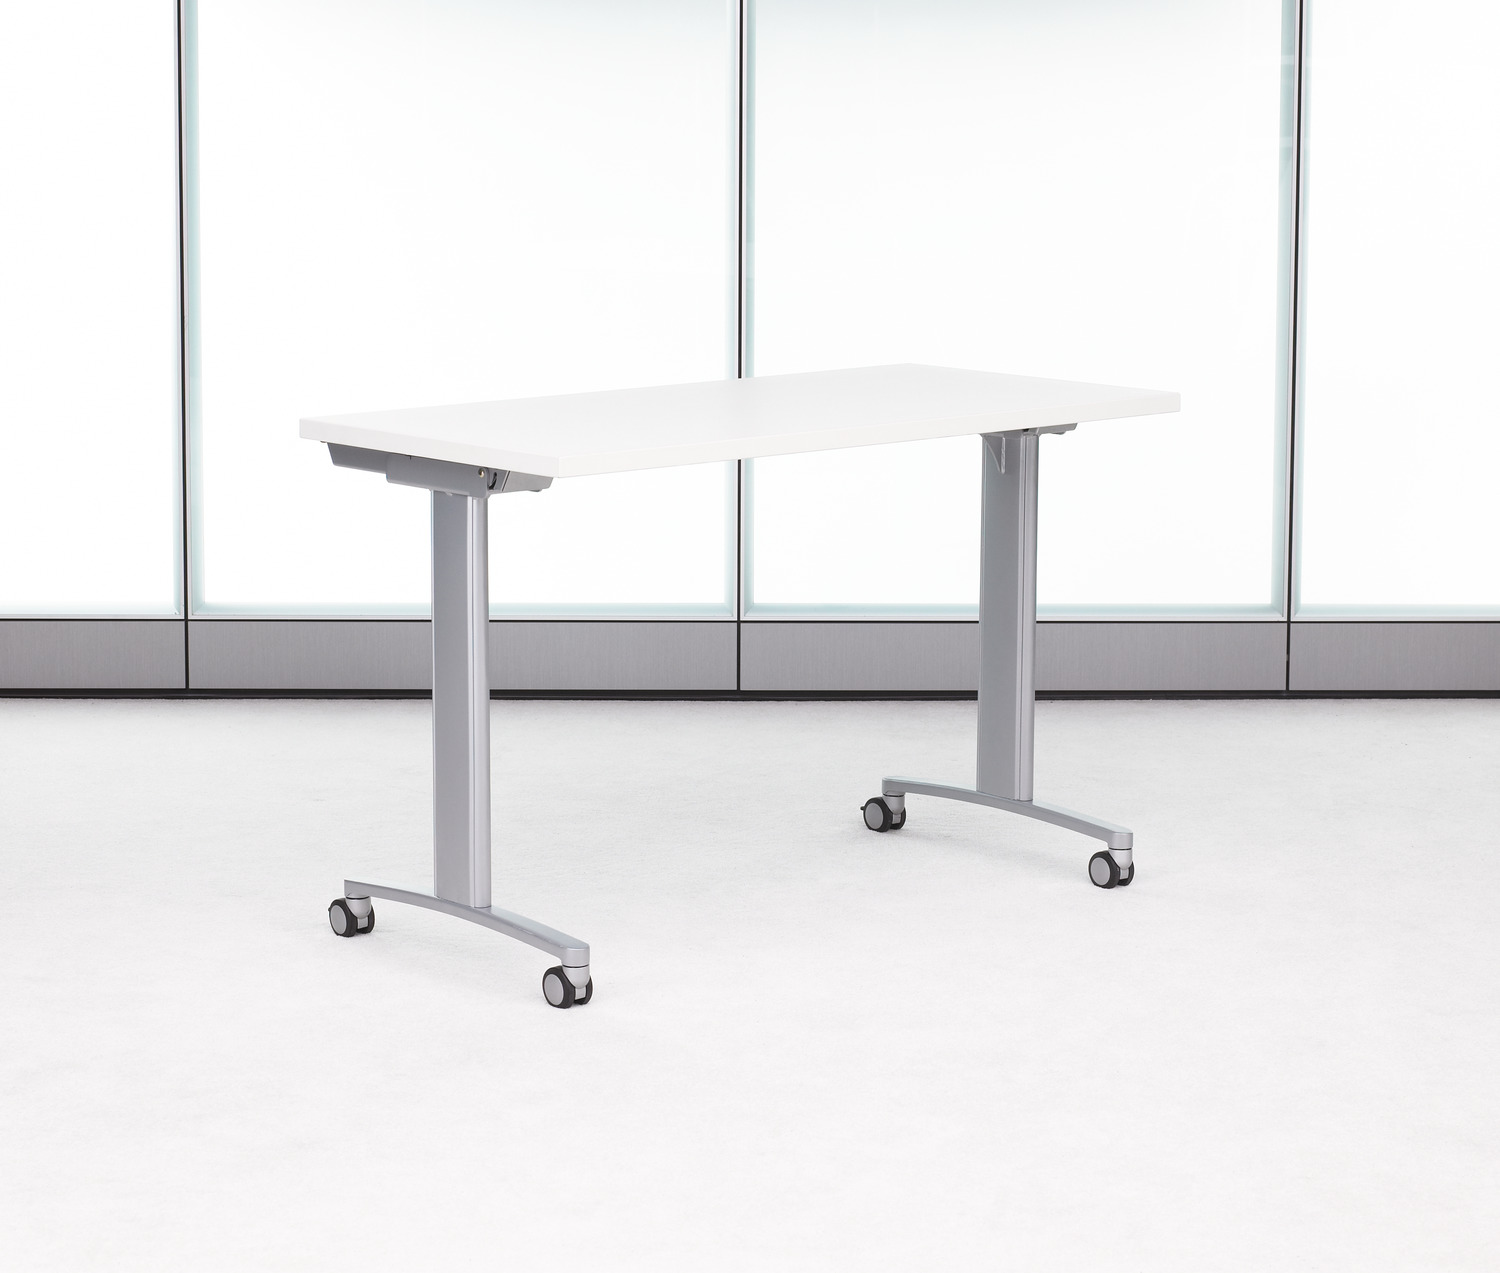 Expansion Training Tables Gallery - Rectangular training table